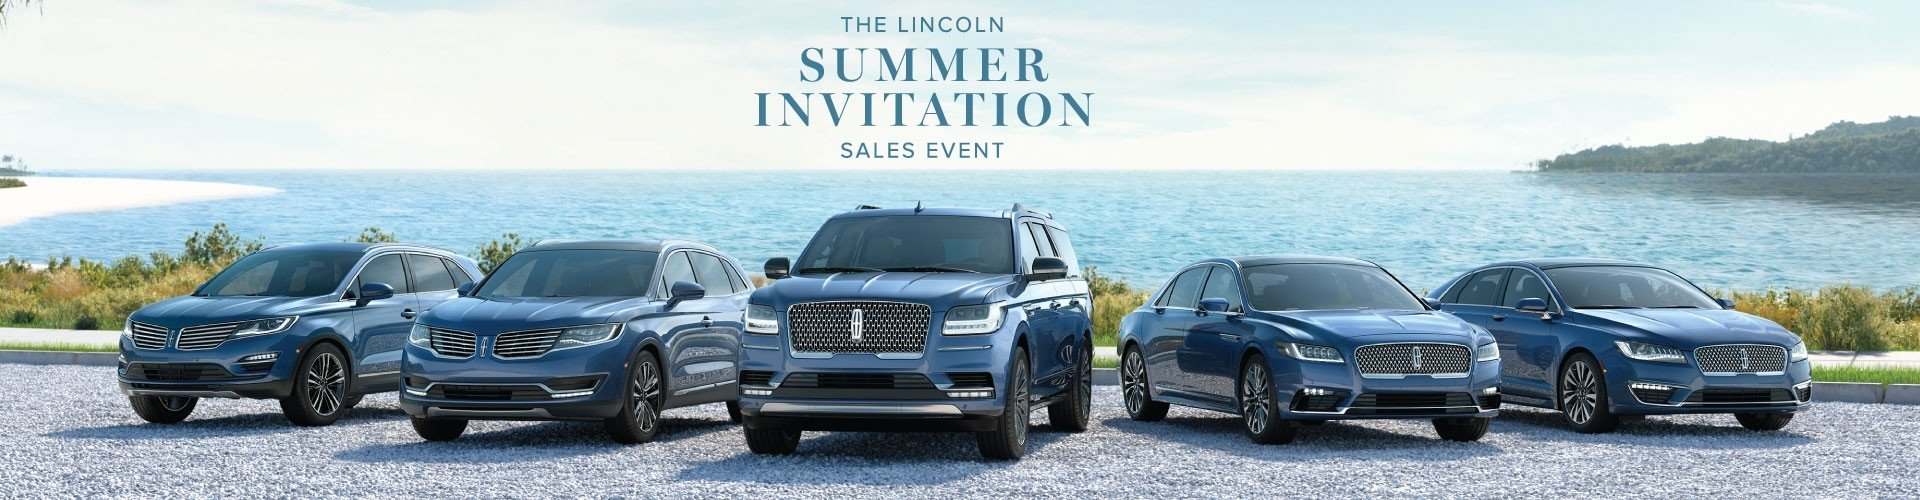 2018 LIncoln Summer Invitation Sales Event